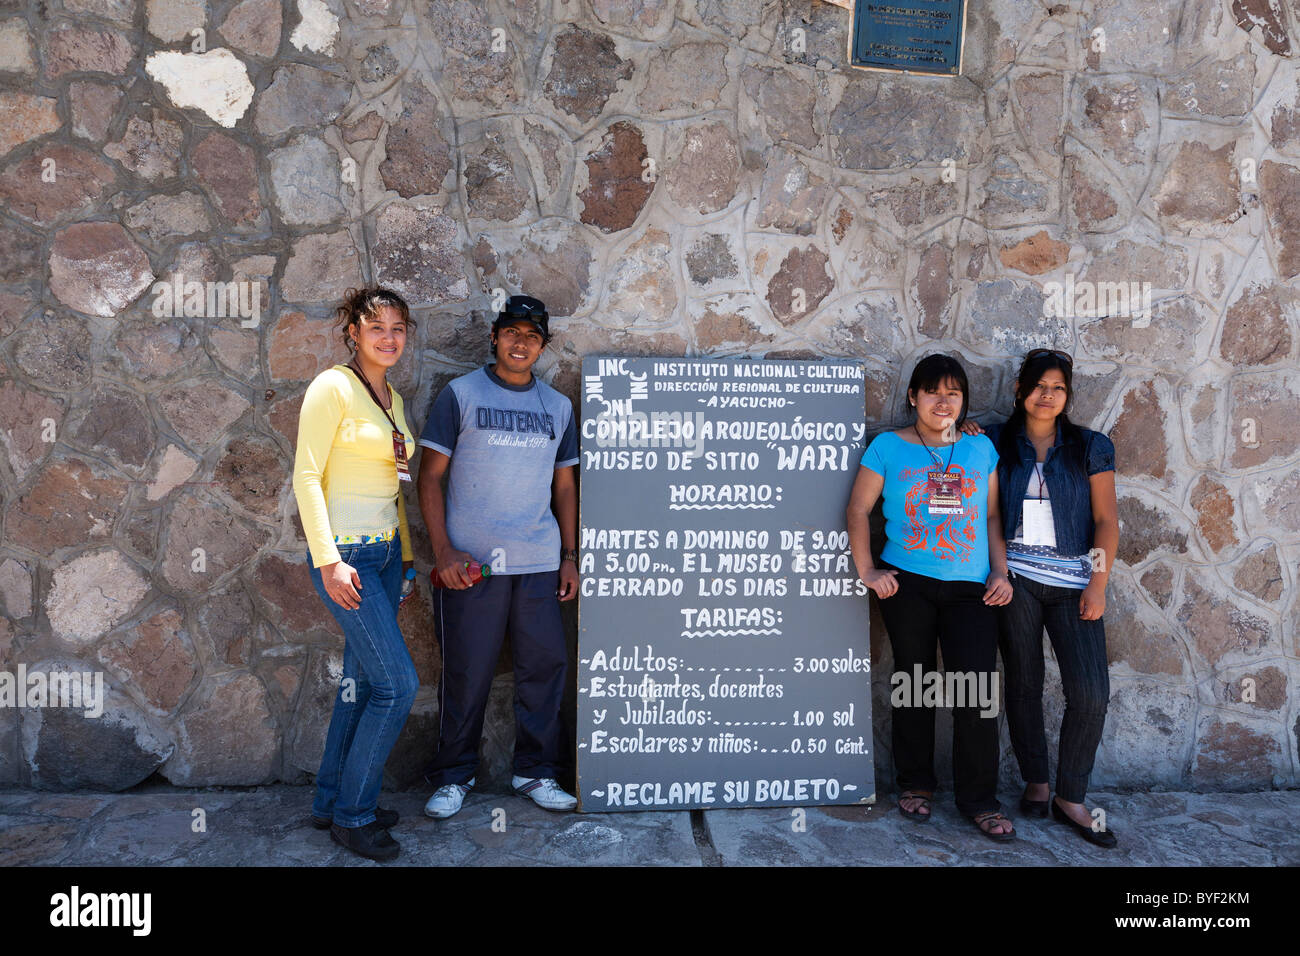 A group of Peruvian students stand outside the ruins of the Wari culture in the Andes 20km from the town of Ayacucho Stock Photo